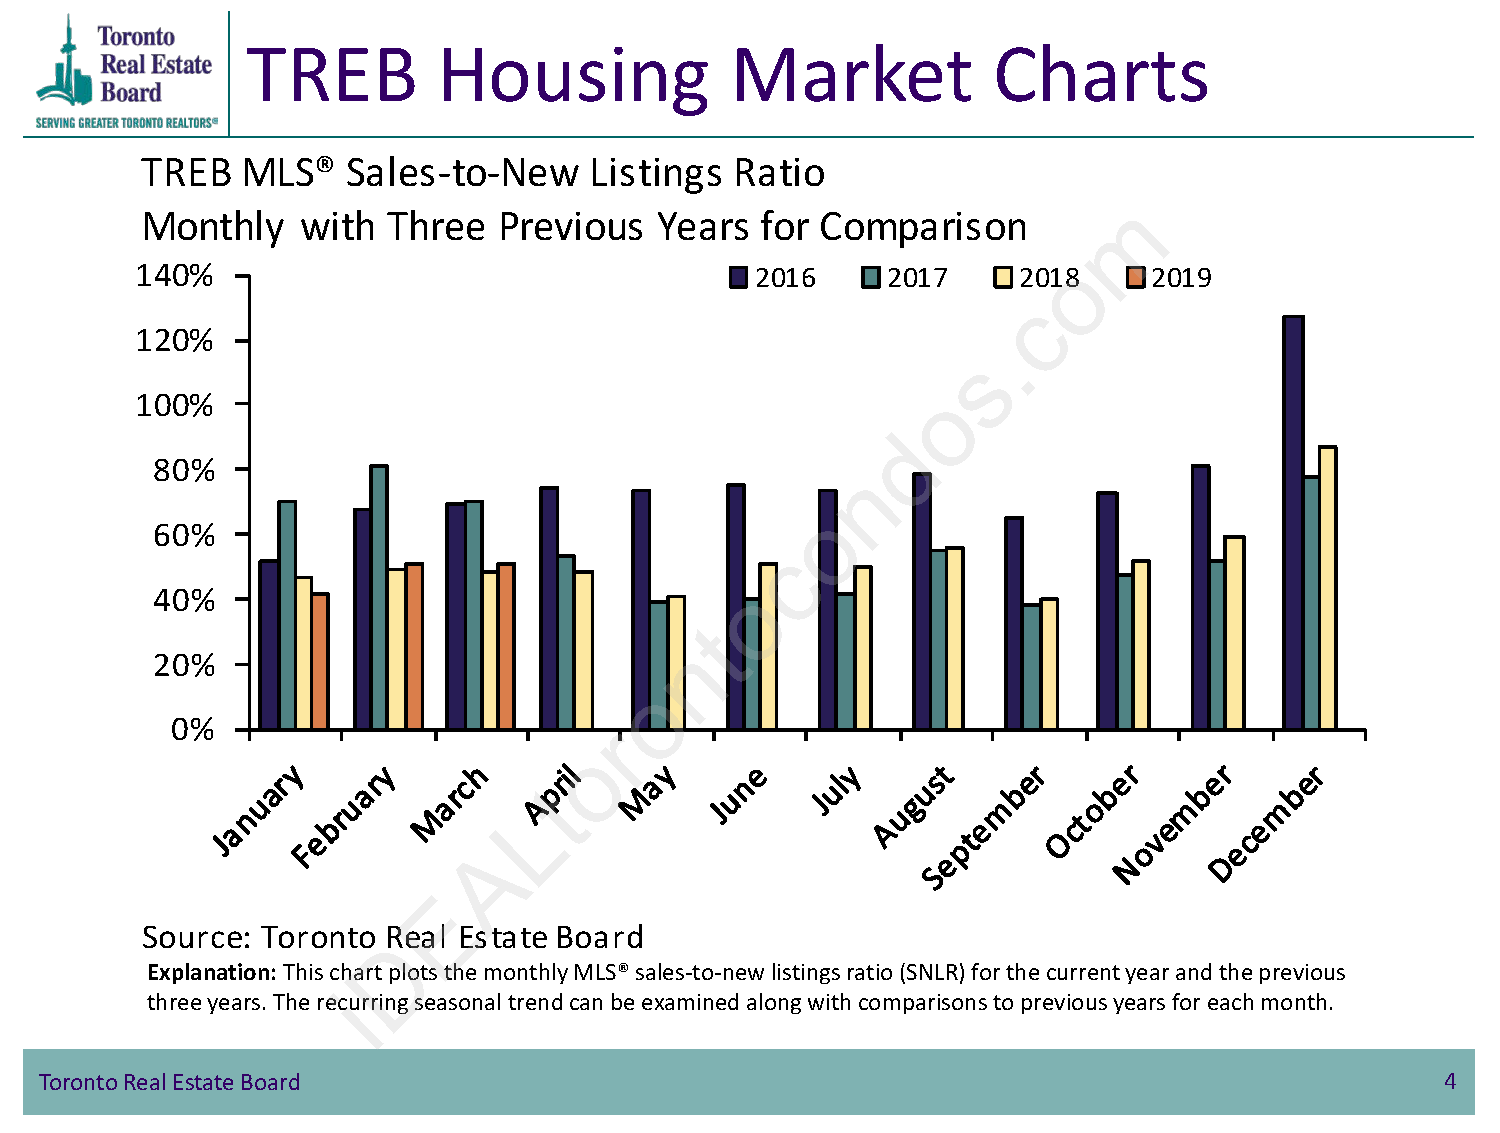 TREB Housing Market Charts - New Listings Ratio